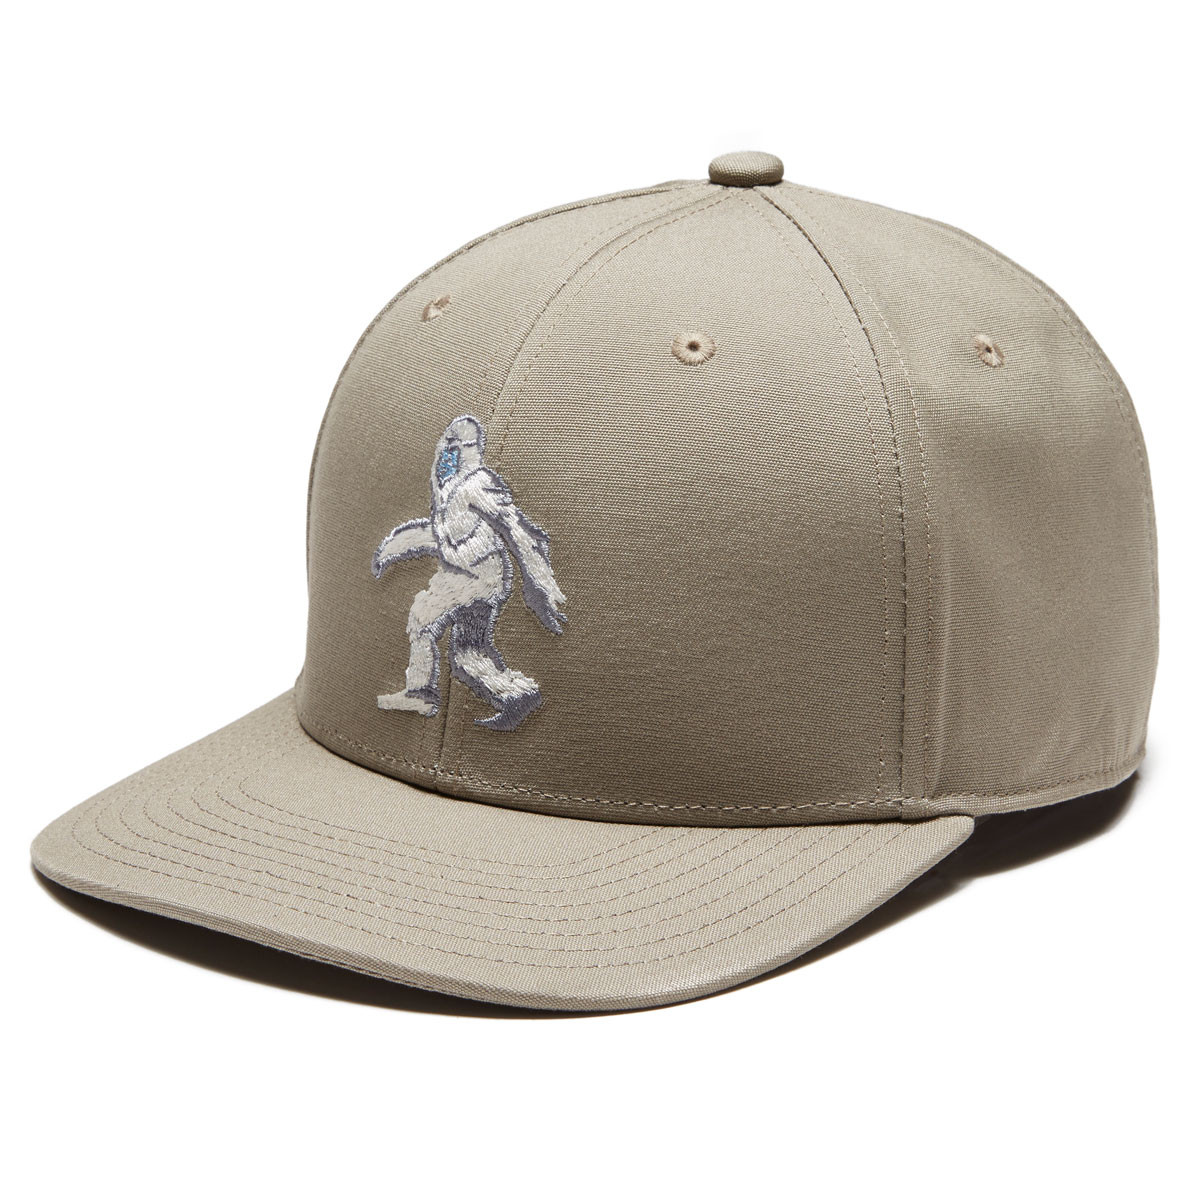 a4194d1d5f3 Coal The Lore Hat - Khaki